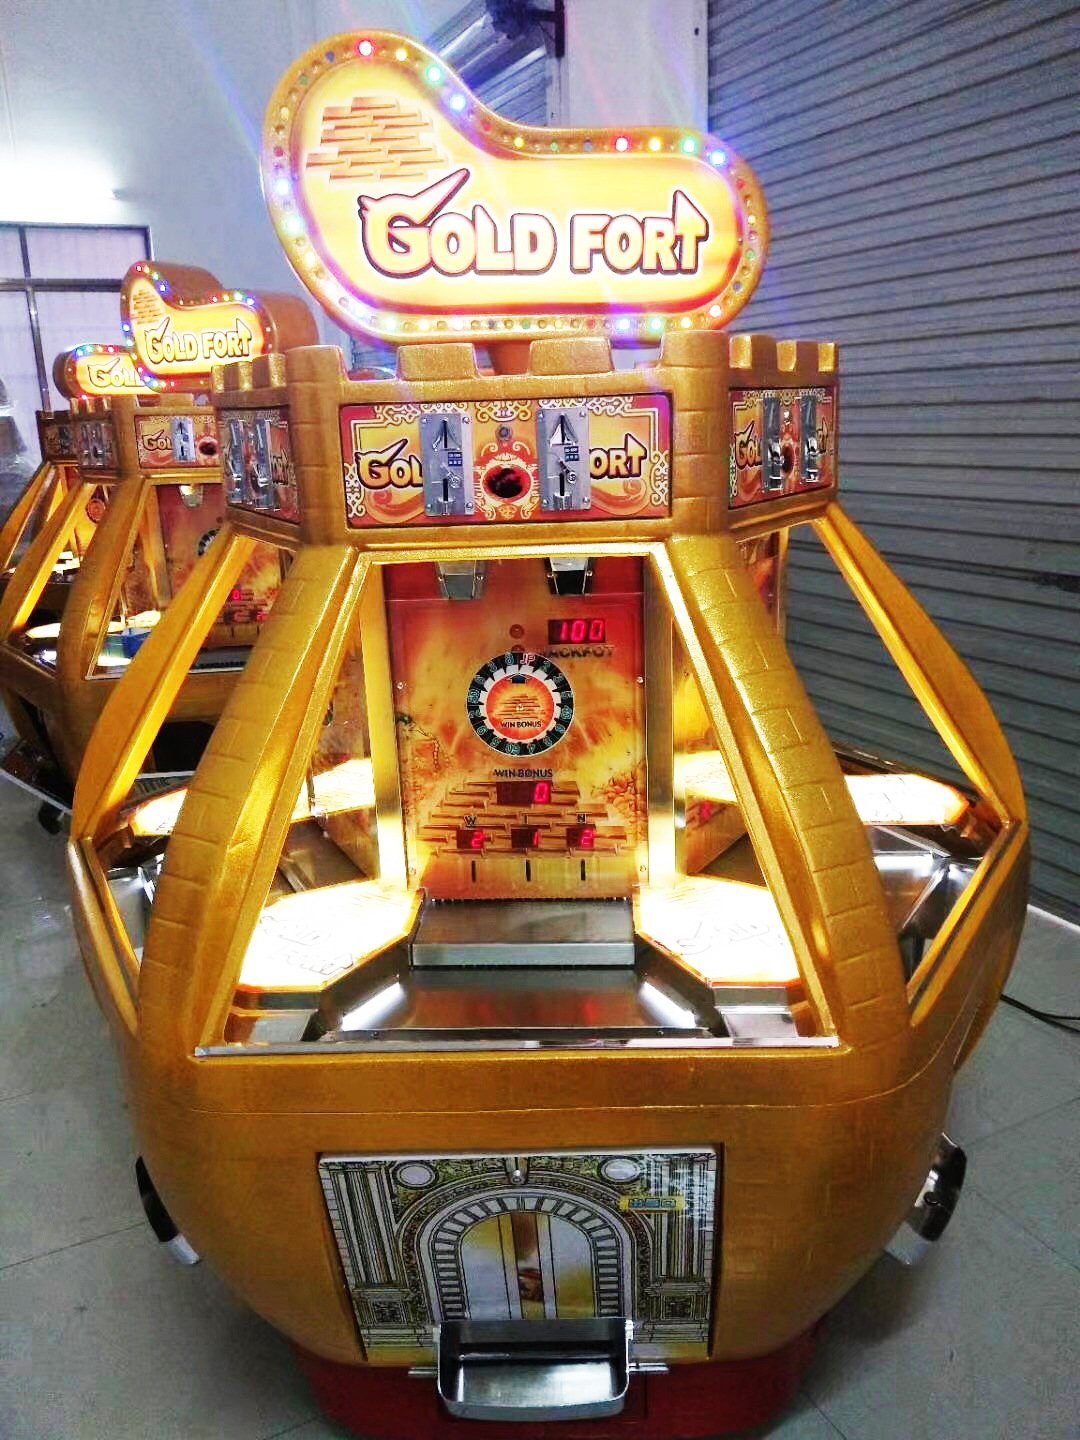 Gold Fort Coin Pusher Arcade